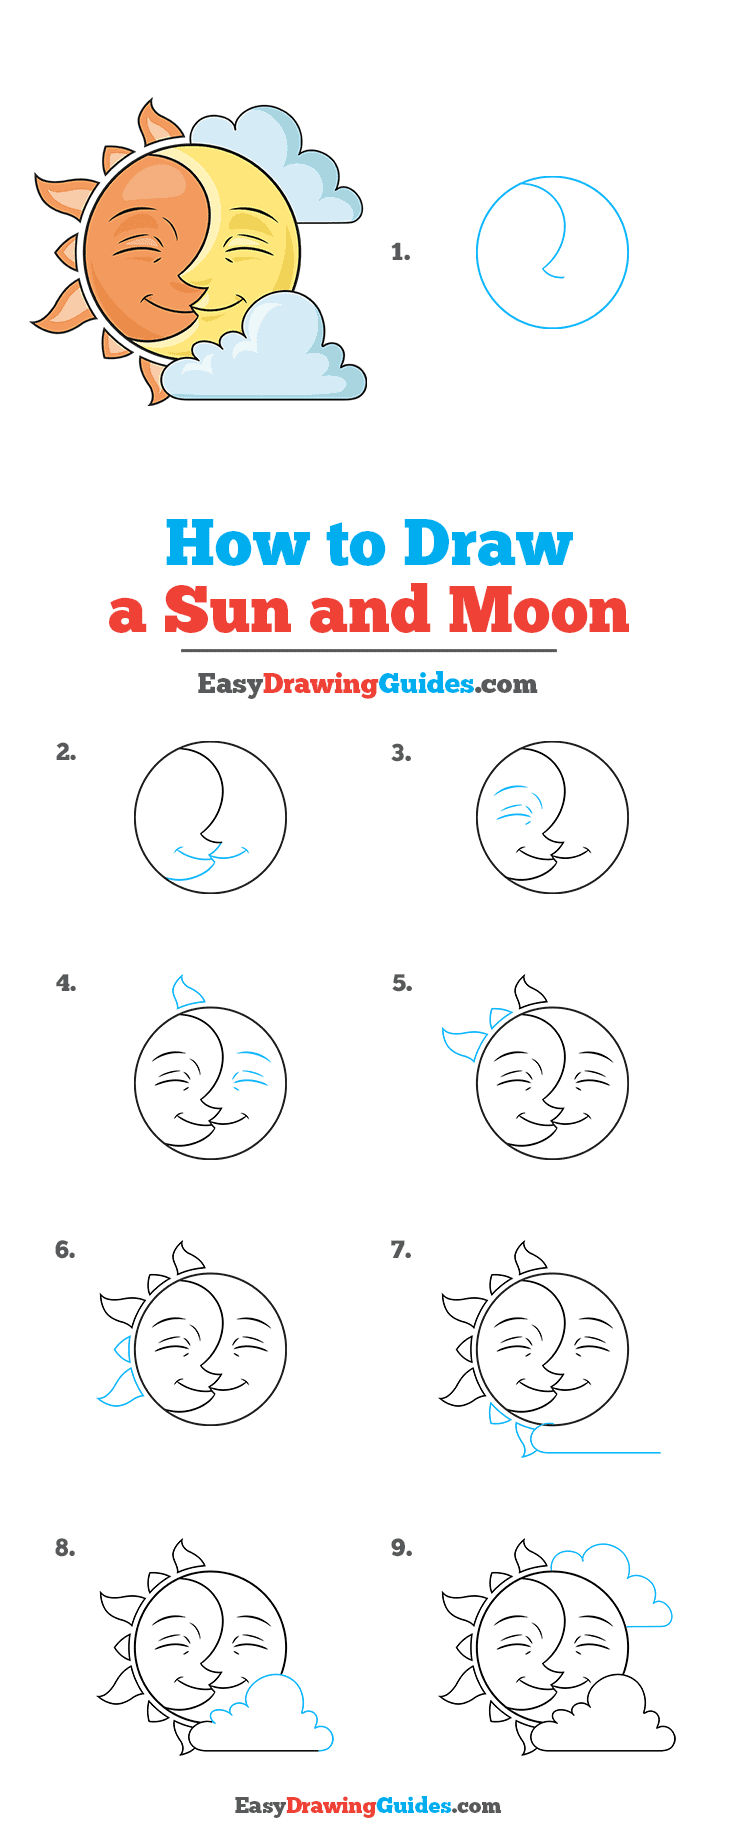 how to Draw a Sun and Moon Step by Step Tutorial Image